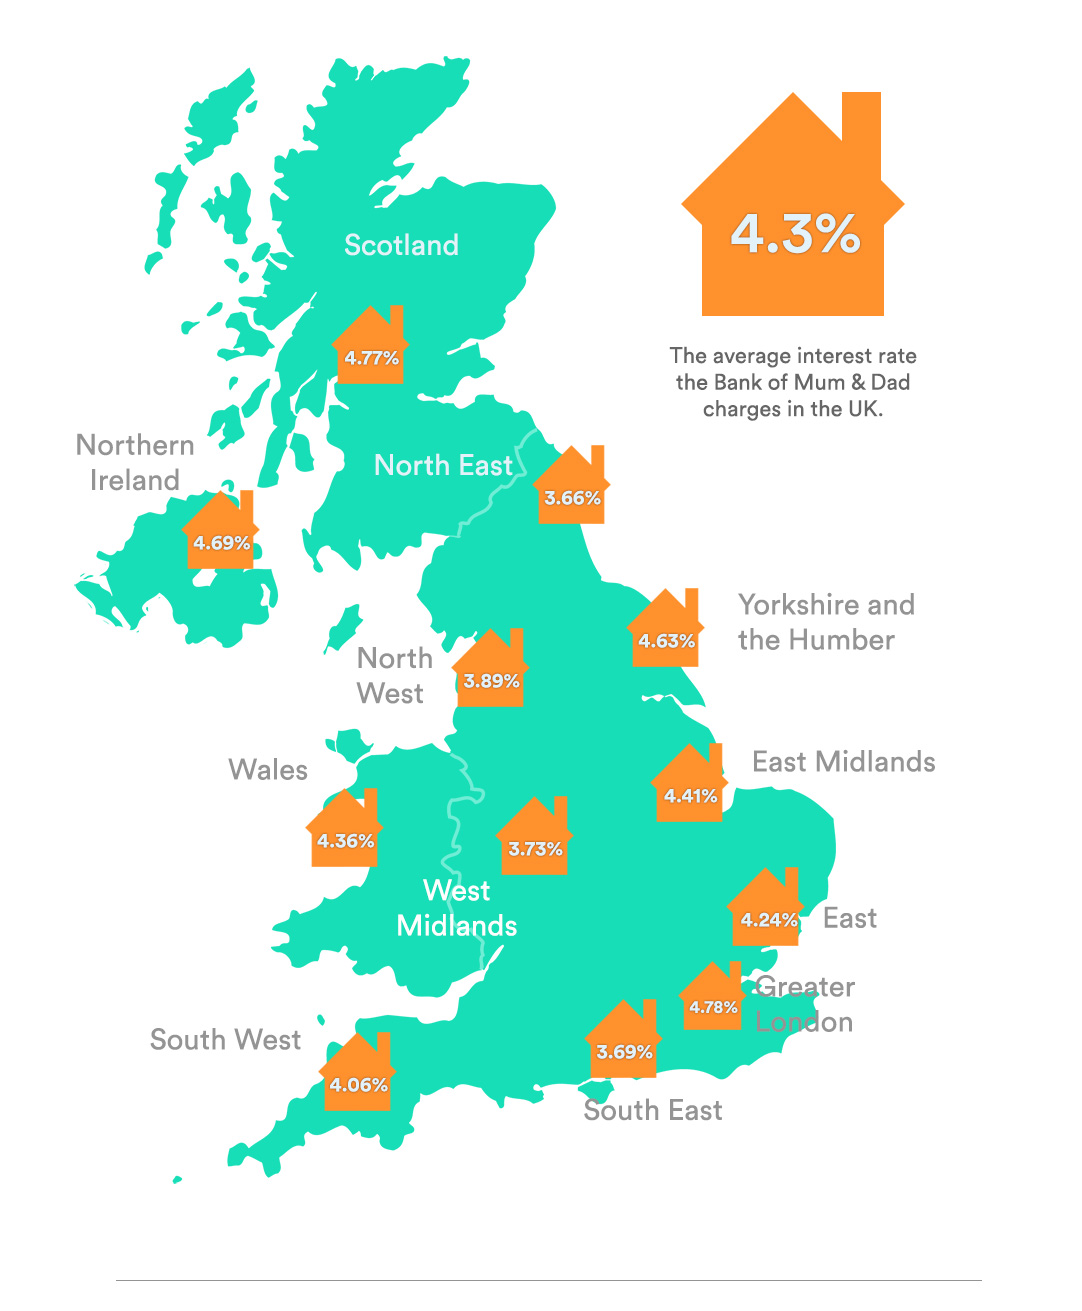 bank of mum and dad interest rates map uk